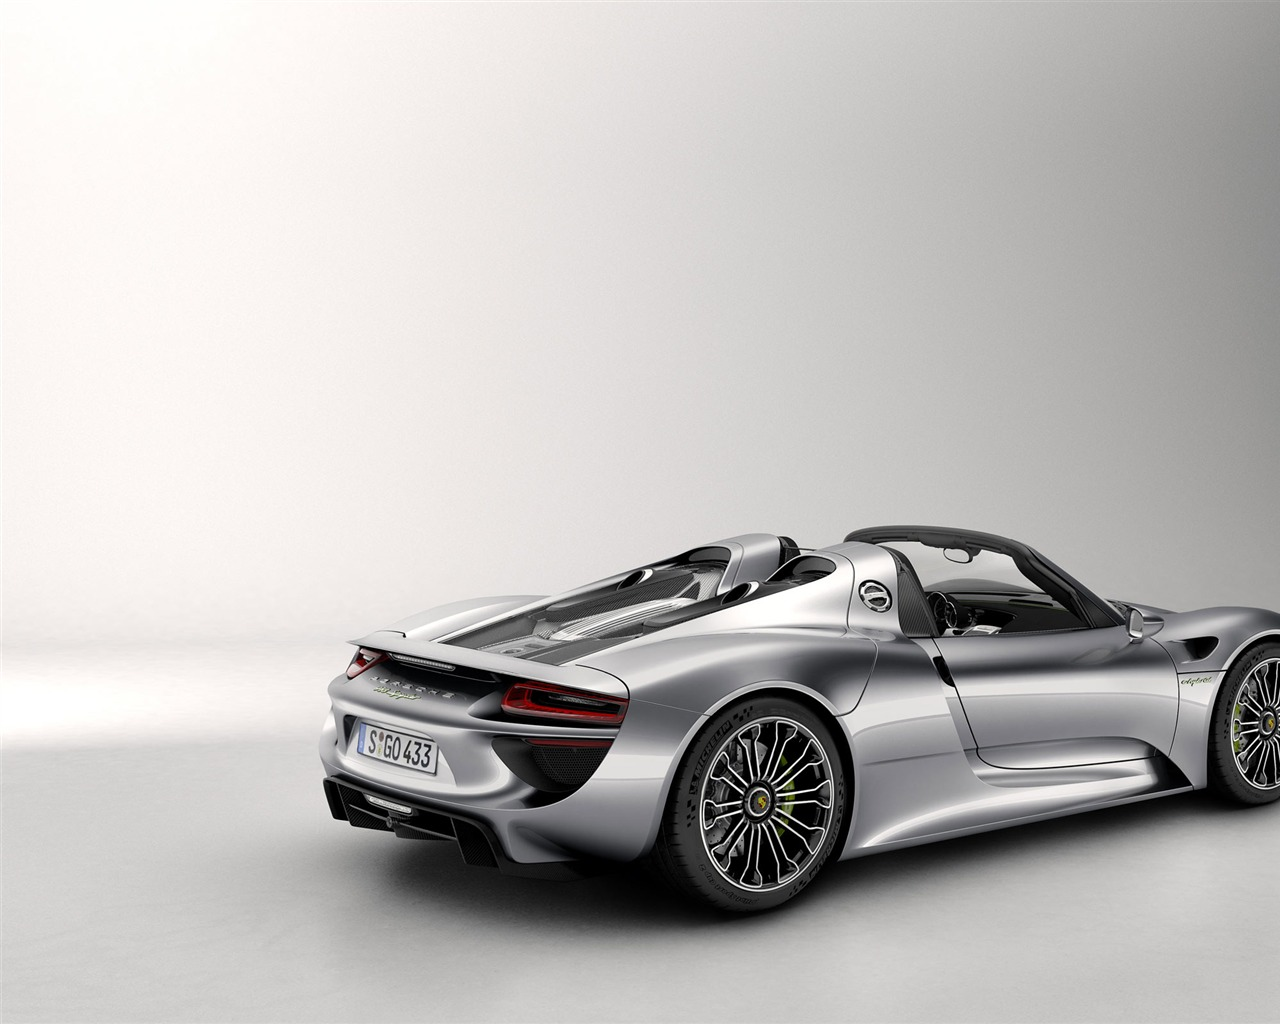 Description 2014 Porsche 918 Spyder Car HD Wallpaper 11 Current Size